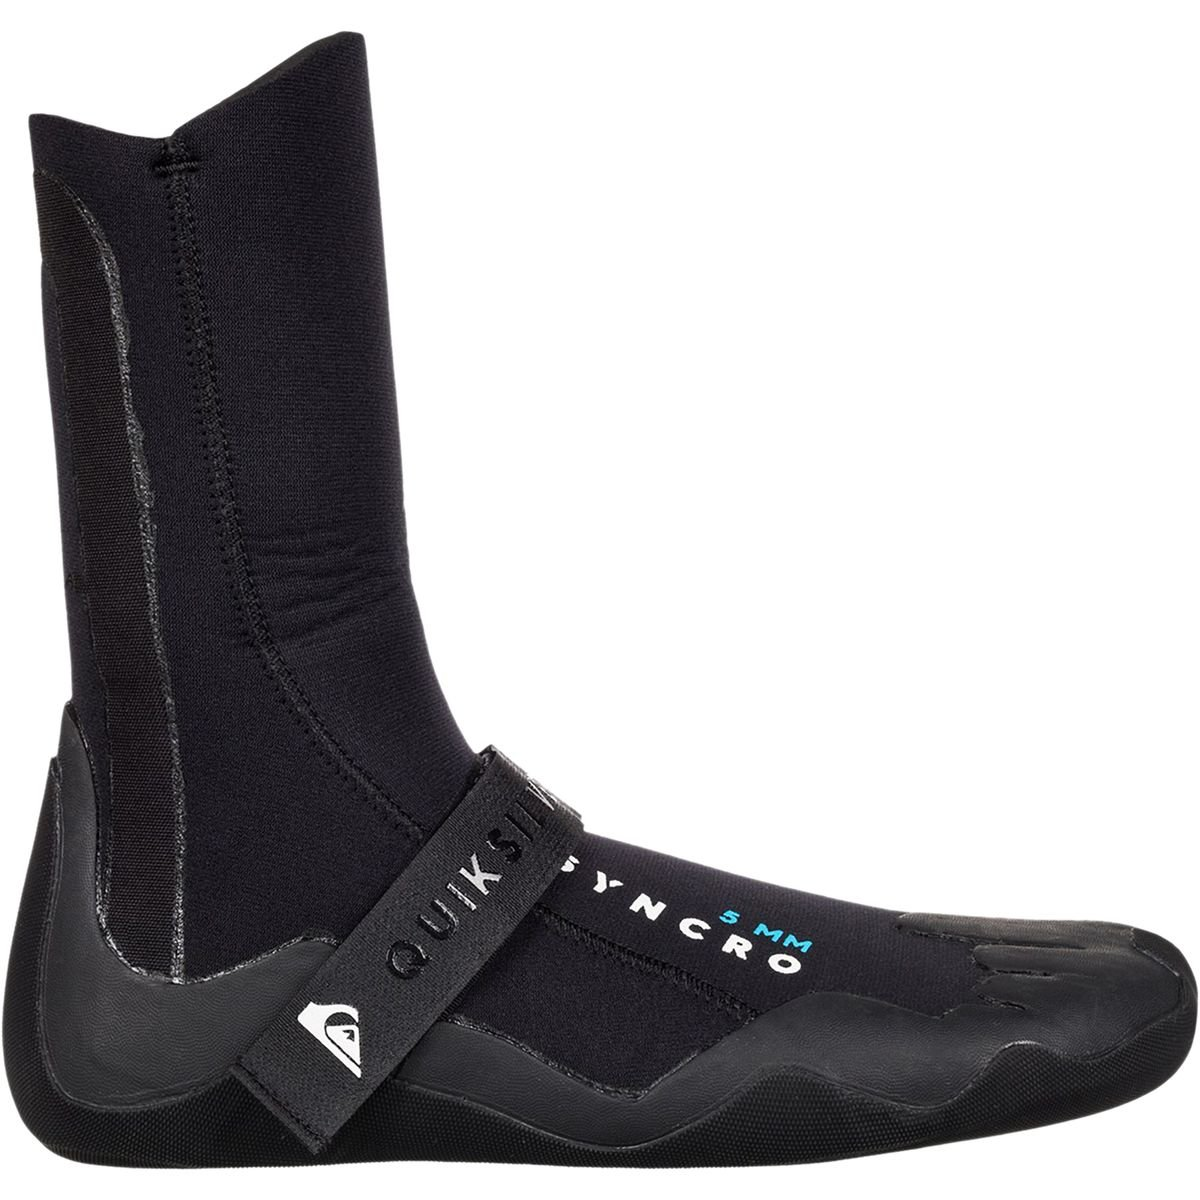 Quiksilver 5mm Syncro Men's Watersports Boots - Black / 9